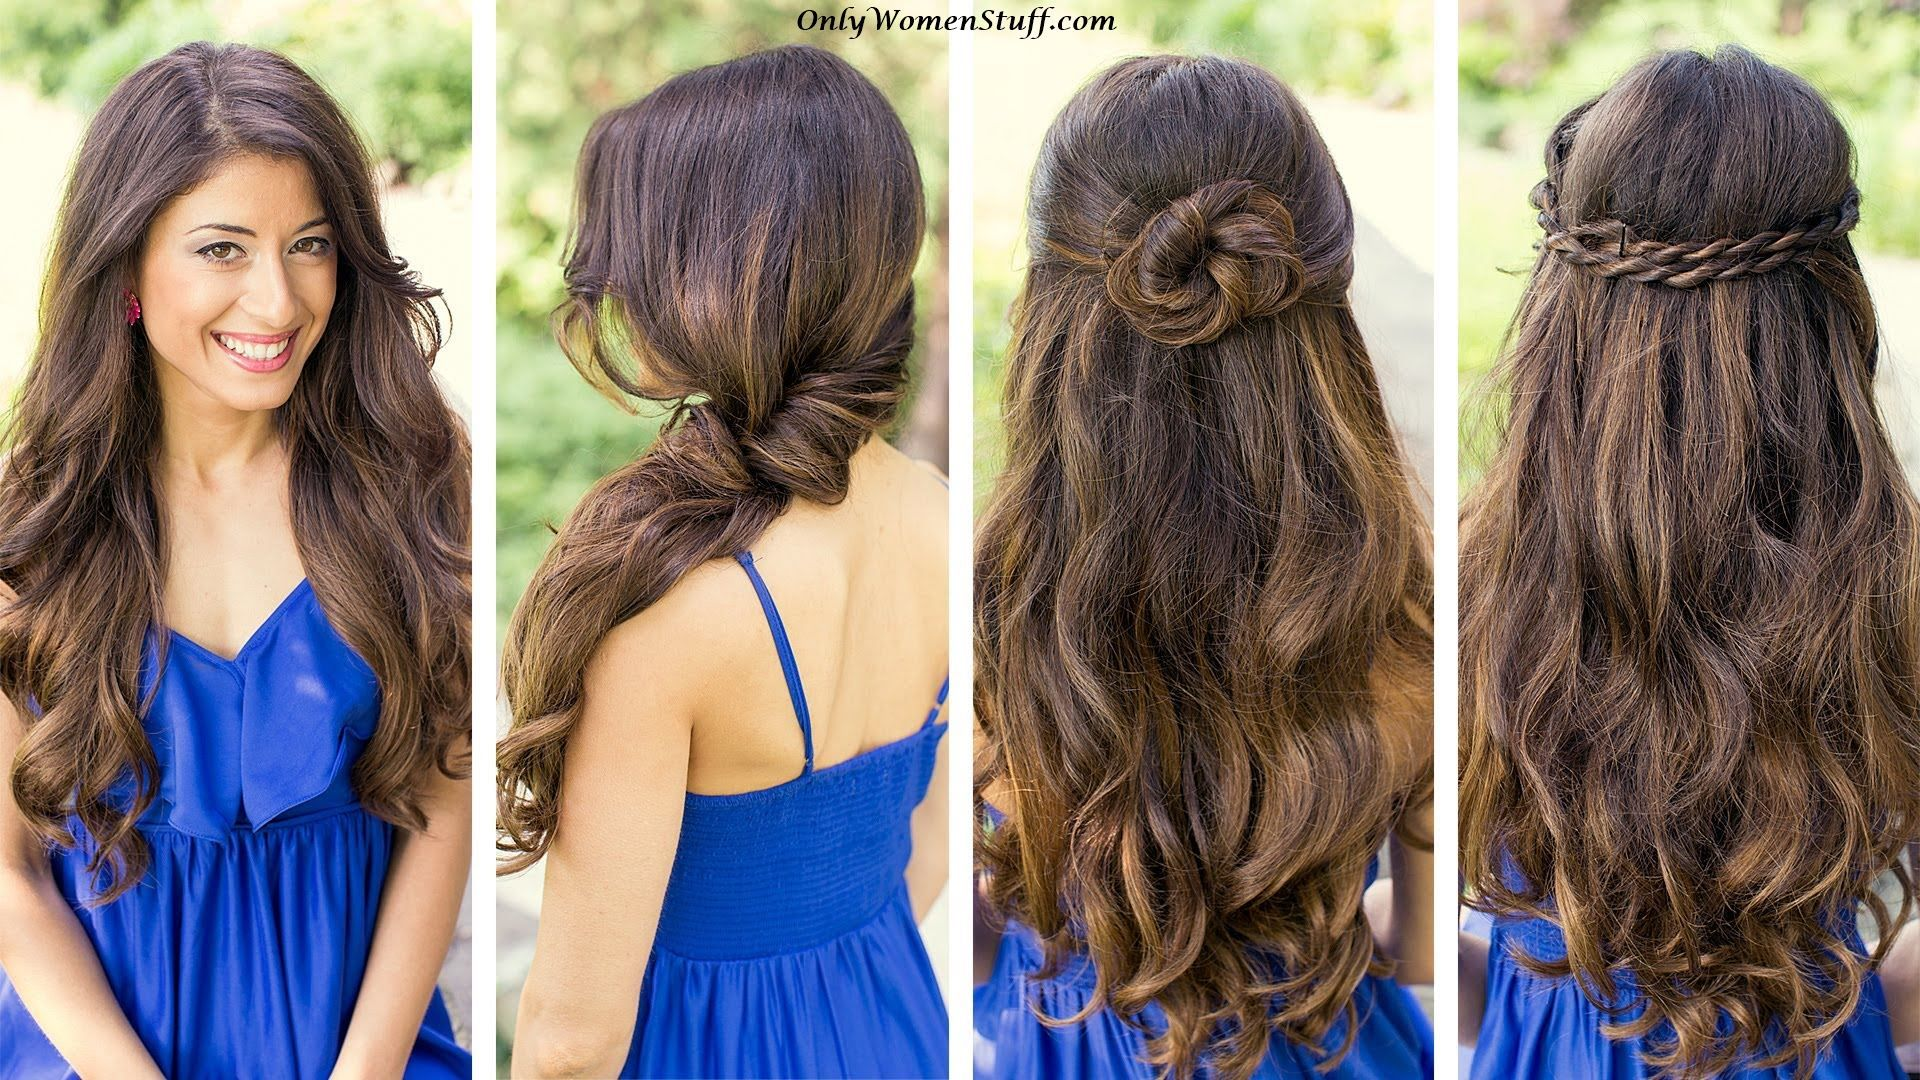 Only Women Stuff A Blog About Beauty Fashion Health Long Hair Styles Long Hair Indian Girls Easy Hairstyles